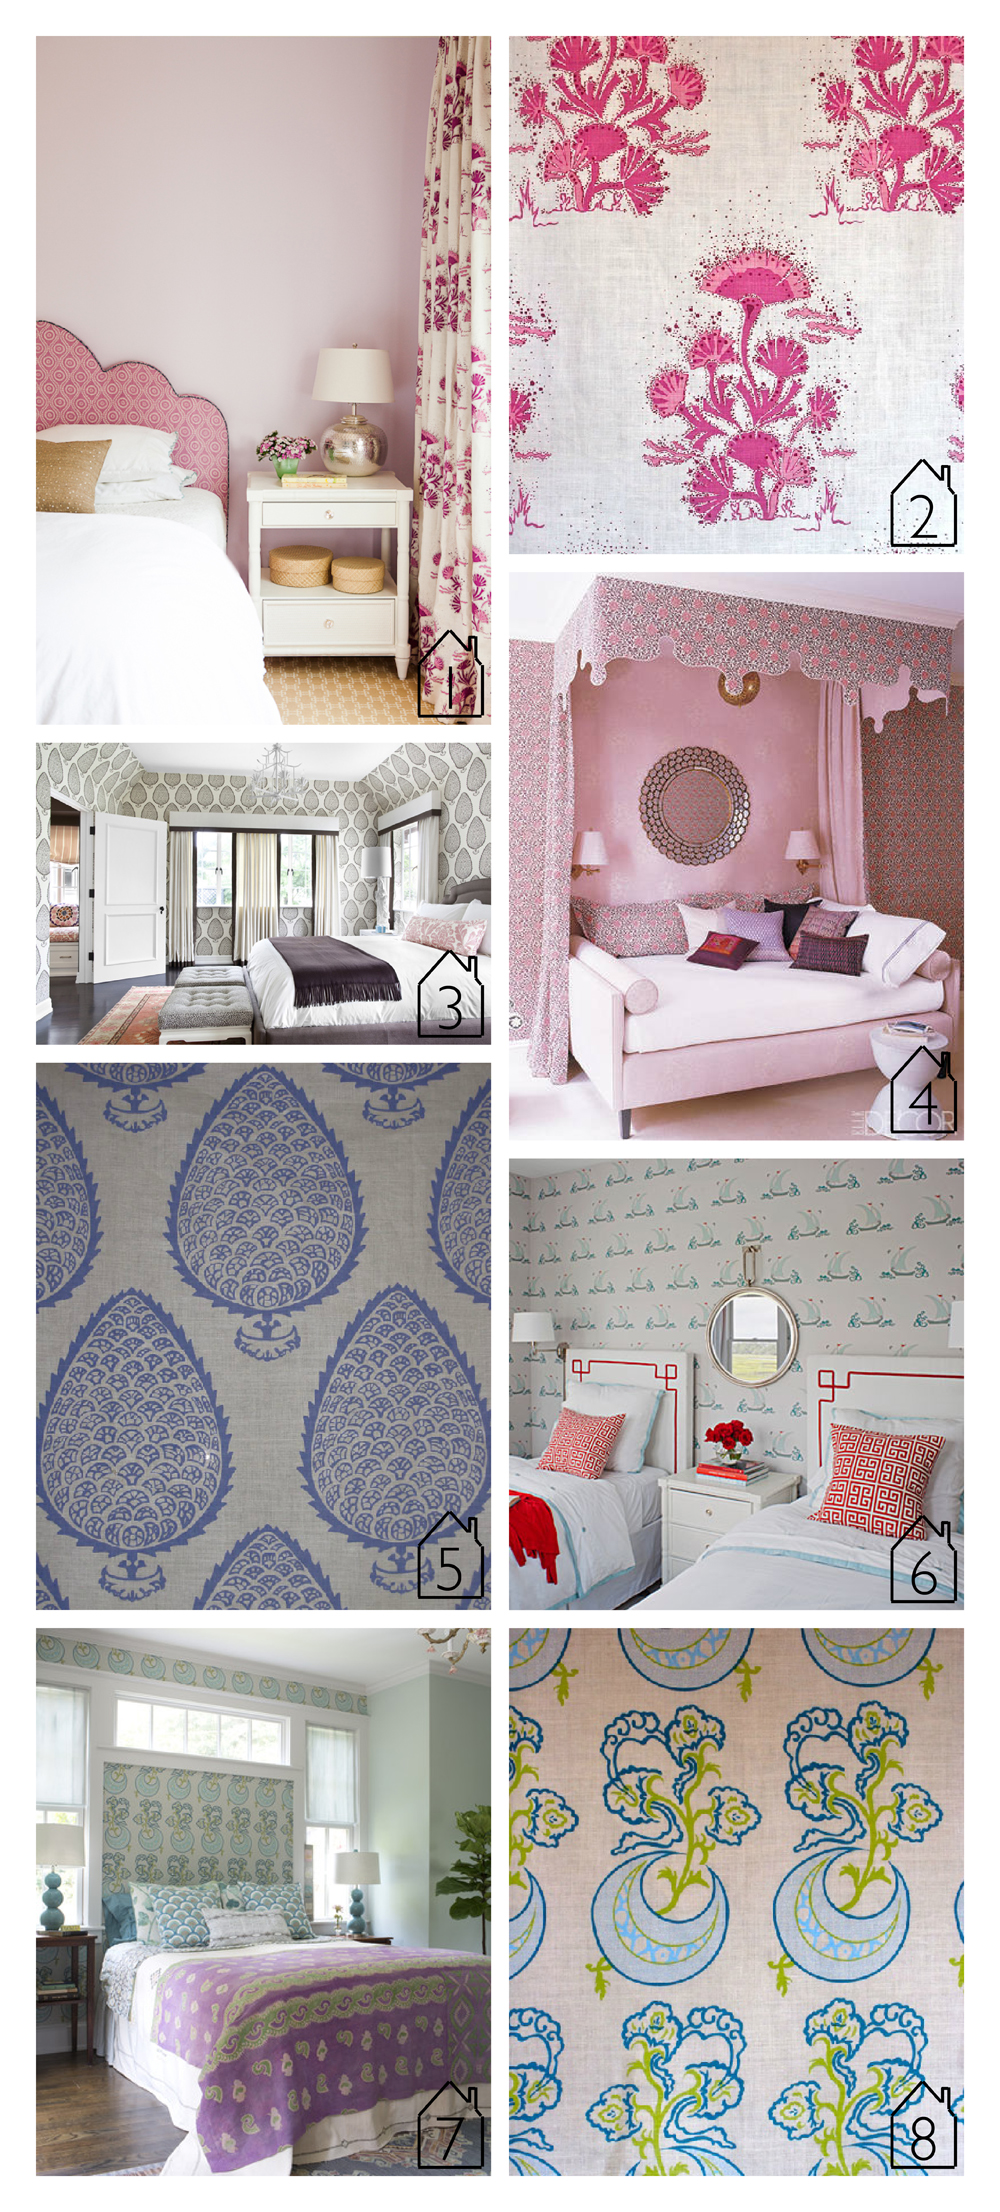 1. design by  Caitlin Moran Interiors   seaweed fabric  in magenta  2.  seaweed fabric  in magenta  3. design by  Betsy Burnham   leaf wallpaper  in gray  4. design by  Katie Ridder  via  Elle Decor   5.  leaf fabric  in periwinkle  6. design by  Liz Carroll  via  Coastal Living   beetlecat wallpaper  in stone  7. design by Tami Ramsay of  Cloth & Kind  via  Lonny   moonflower fabric  in turquoise  8.  moonflower fabric  in turquoise